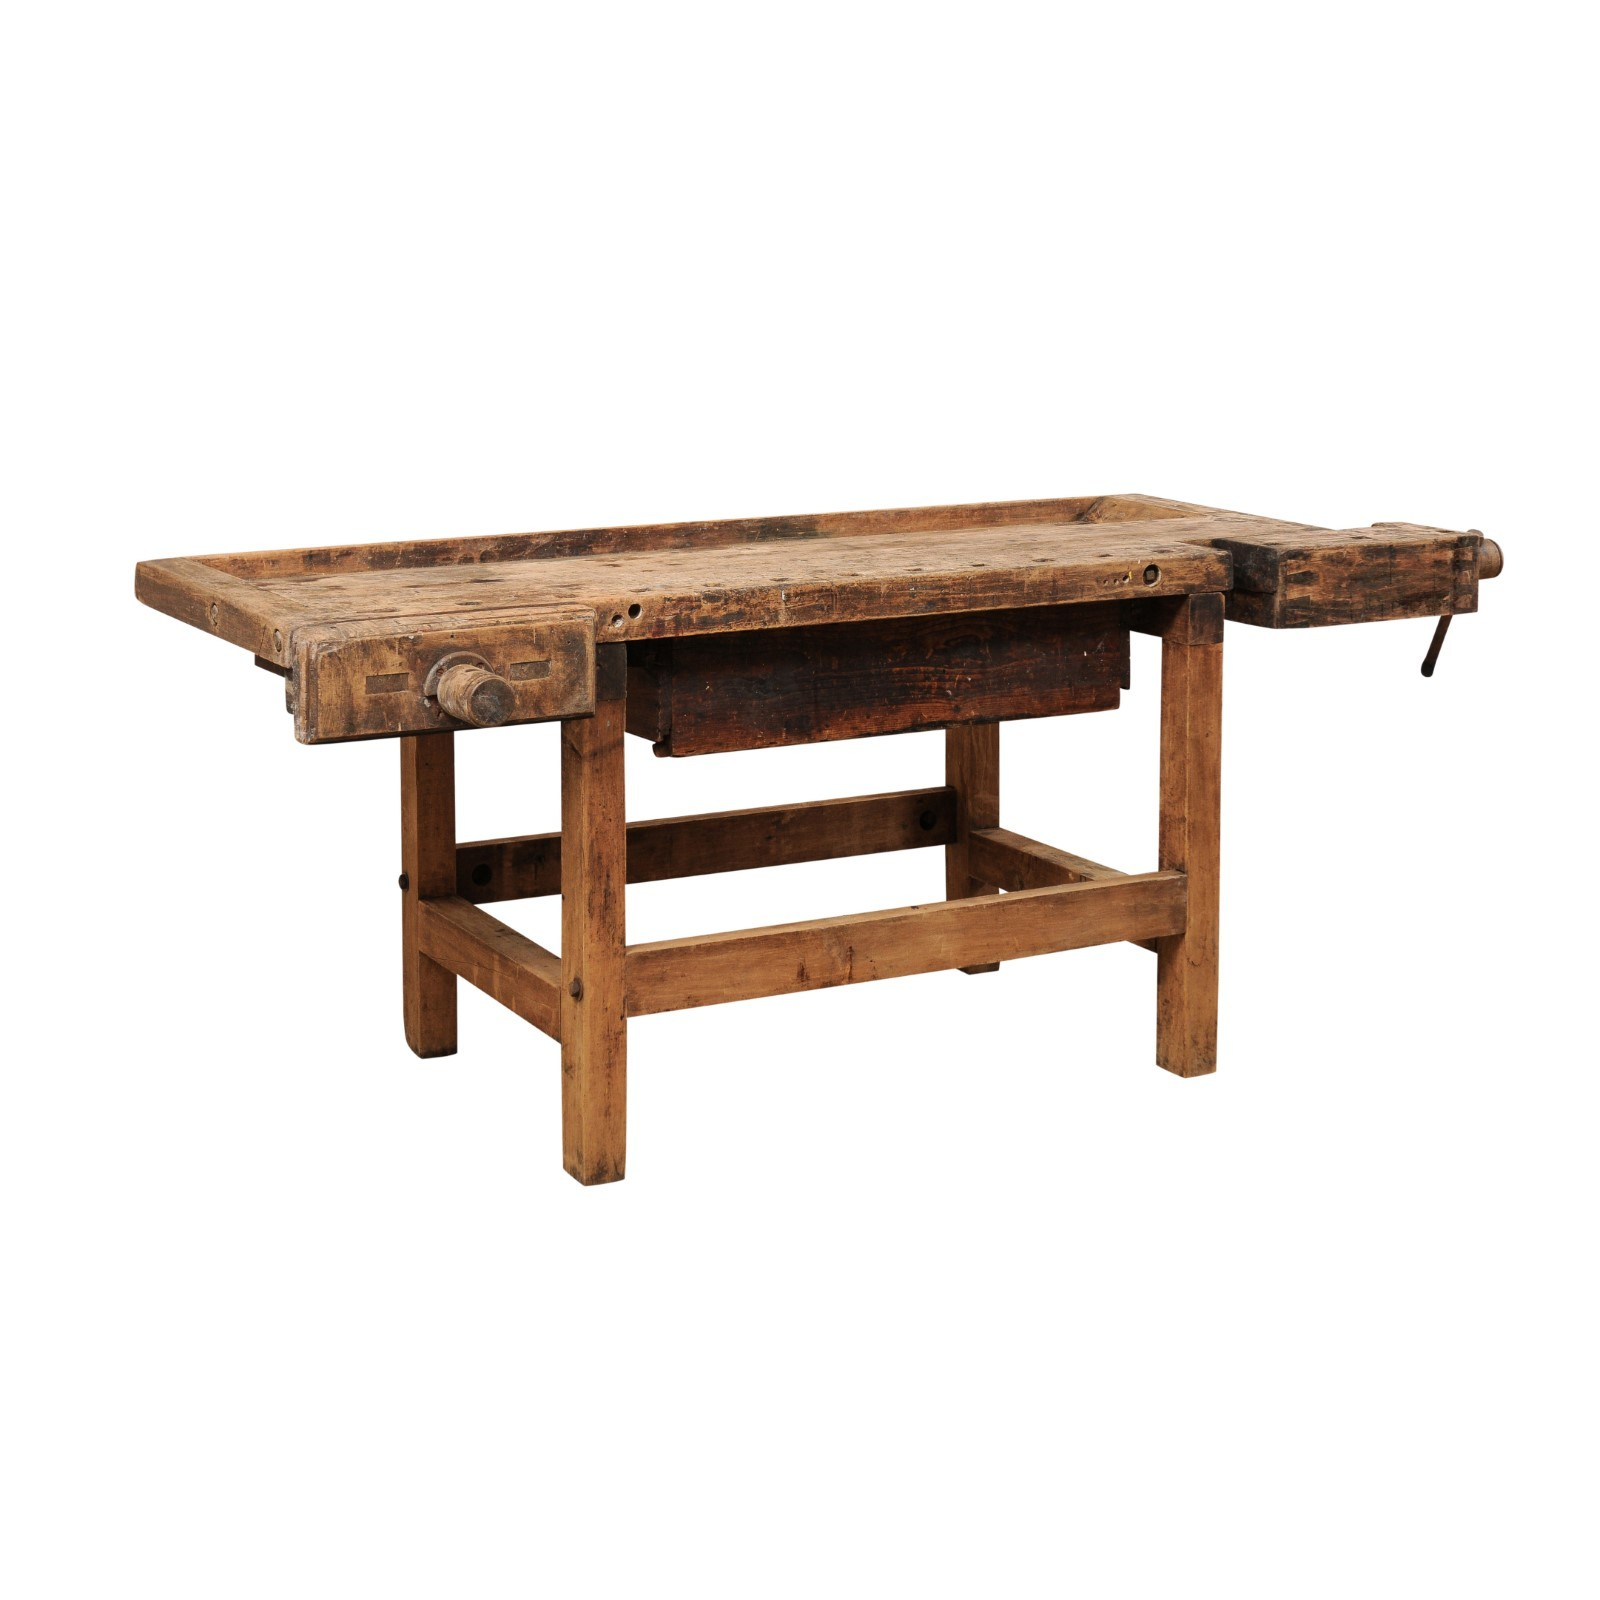 Antique Work Bench Table w/Drawer, 7+ Ft